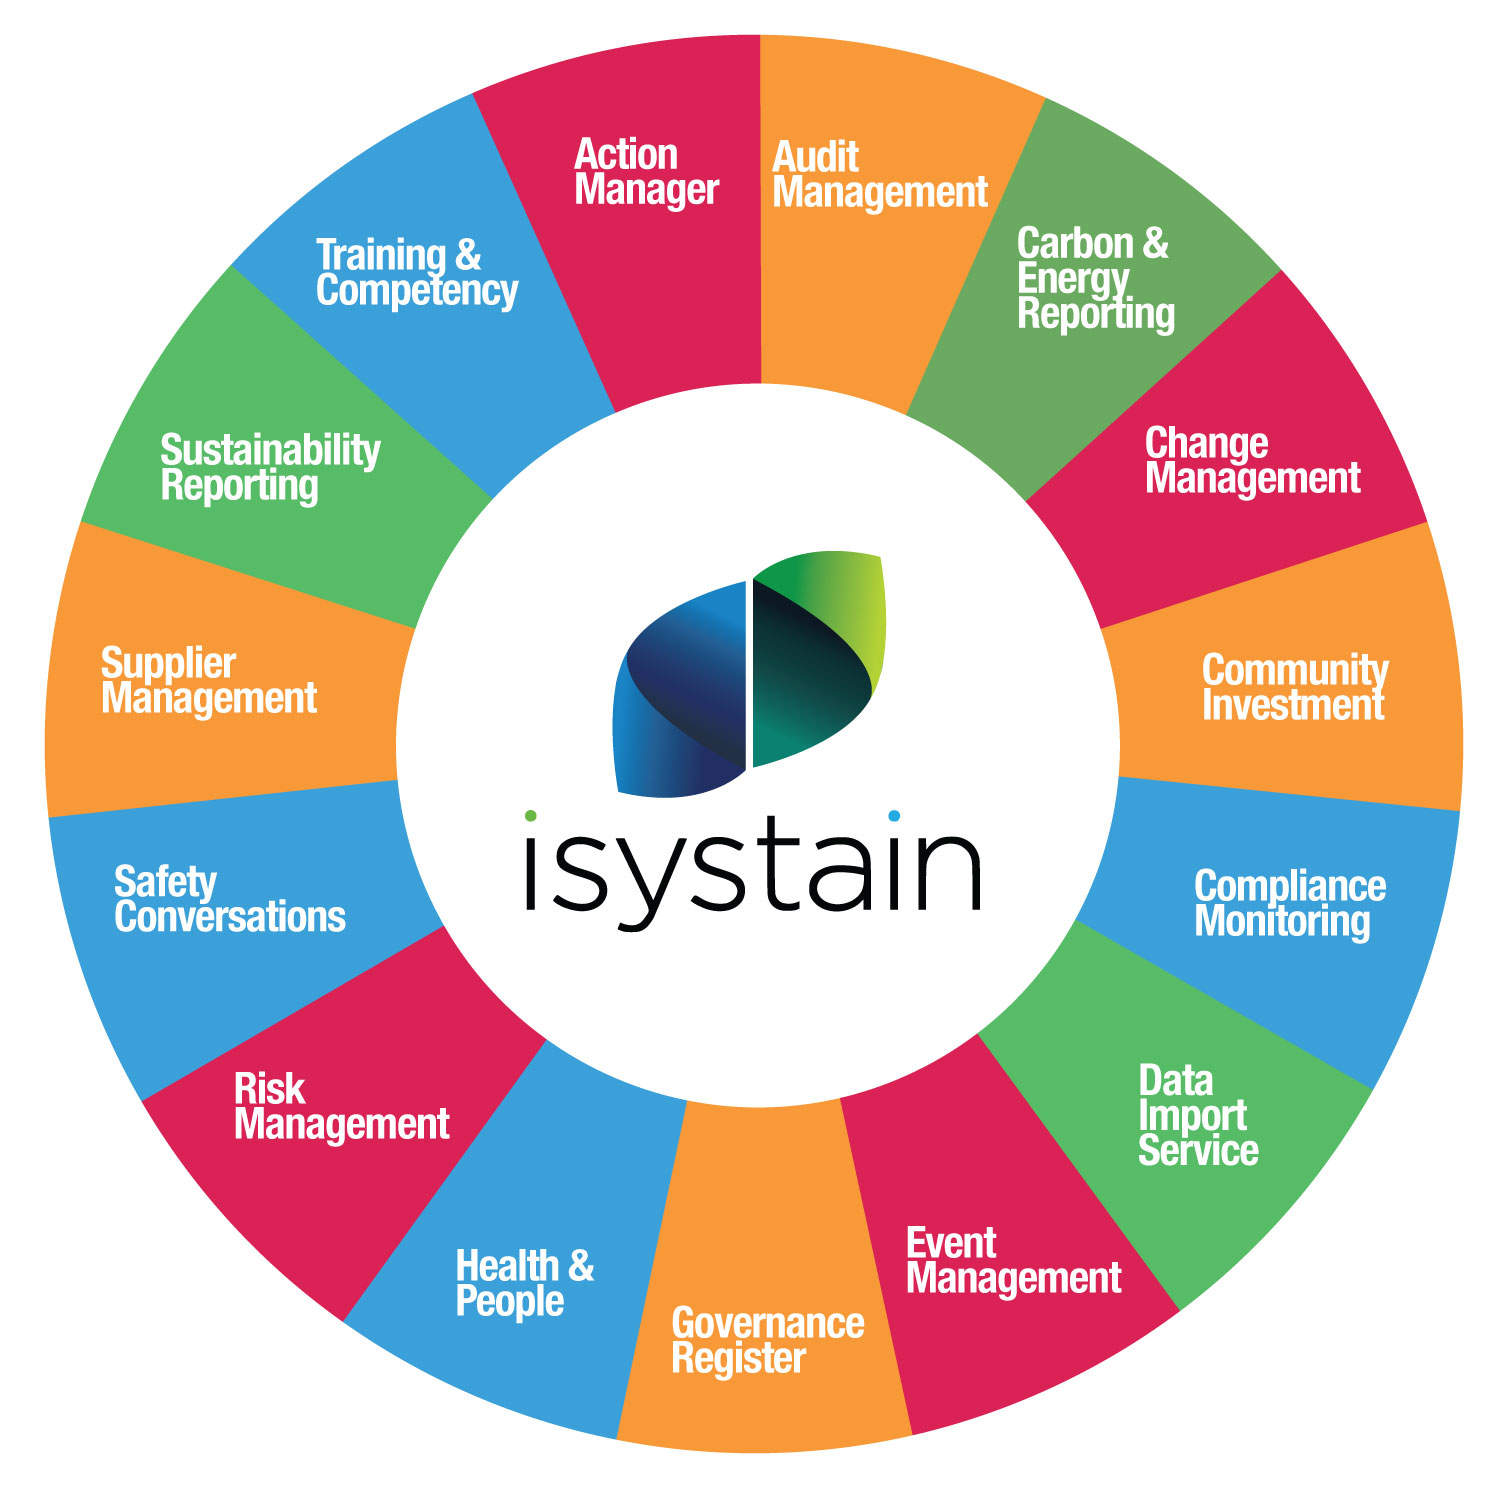 The iSystain platform is based on data-driven architecture, this enables high flexibility and configurability. It's built to coexist in an ecosystem of other systems. iSystain has been designed from the ground up to acquire information from other systems. Streamline and automate your business processes with our integrated suite of effective business processes offering generic tools such as workflow, business process modelling, action and event management. Featuring a business intelligence layer to turn data into decision making information..